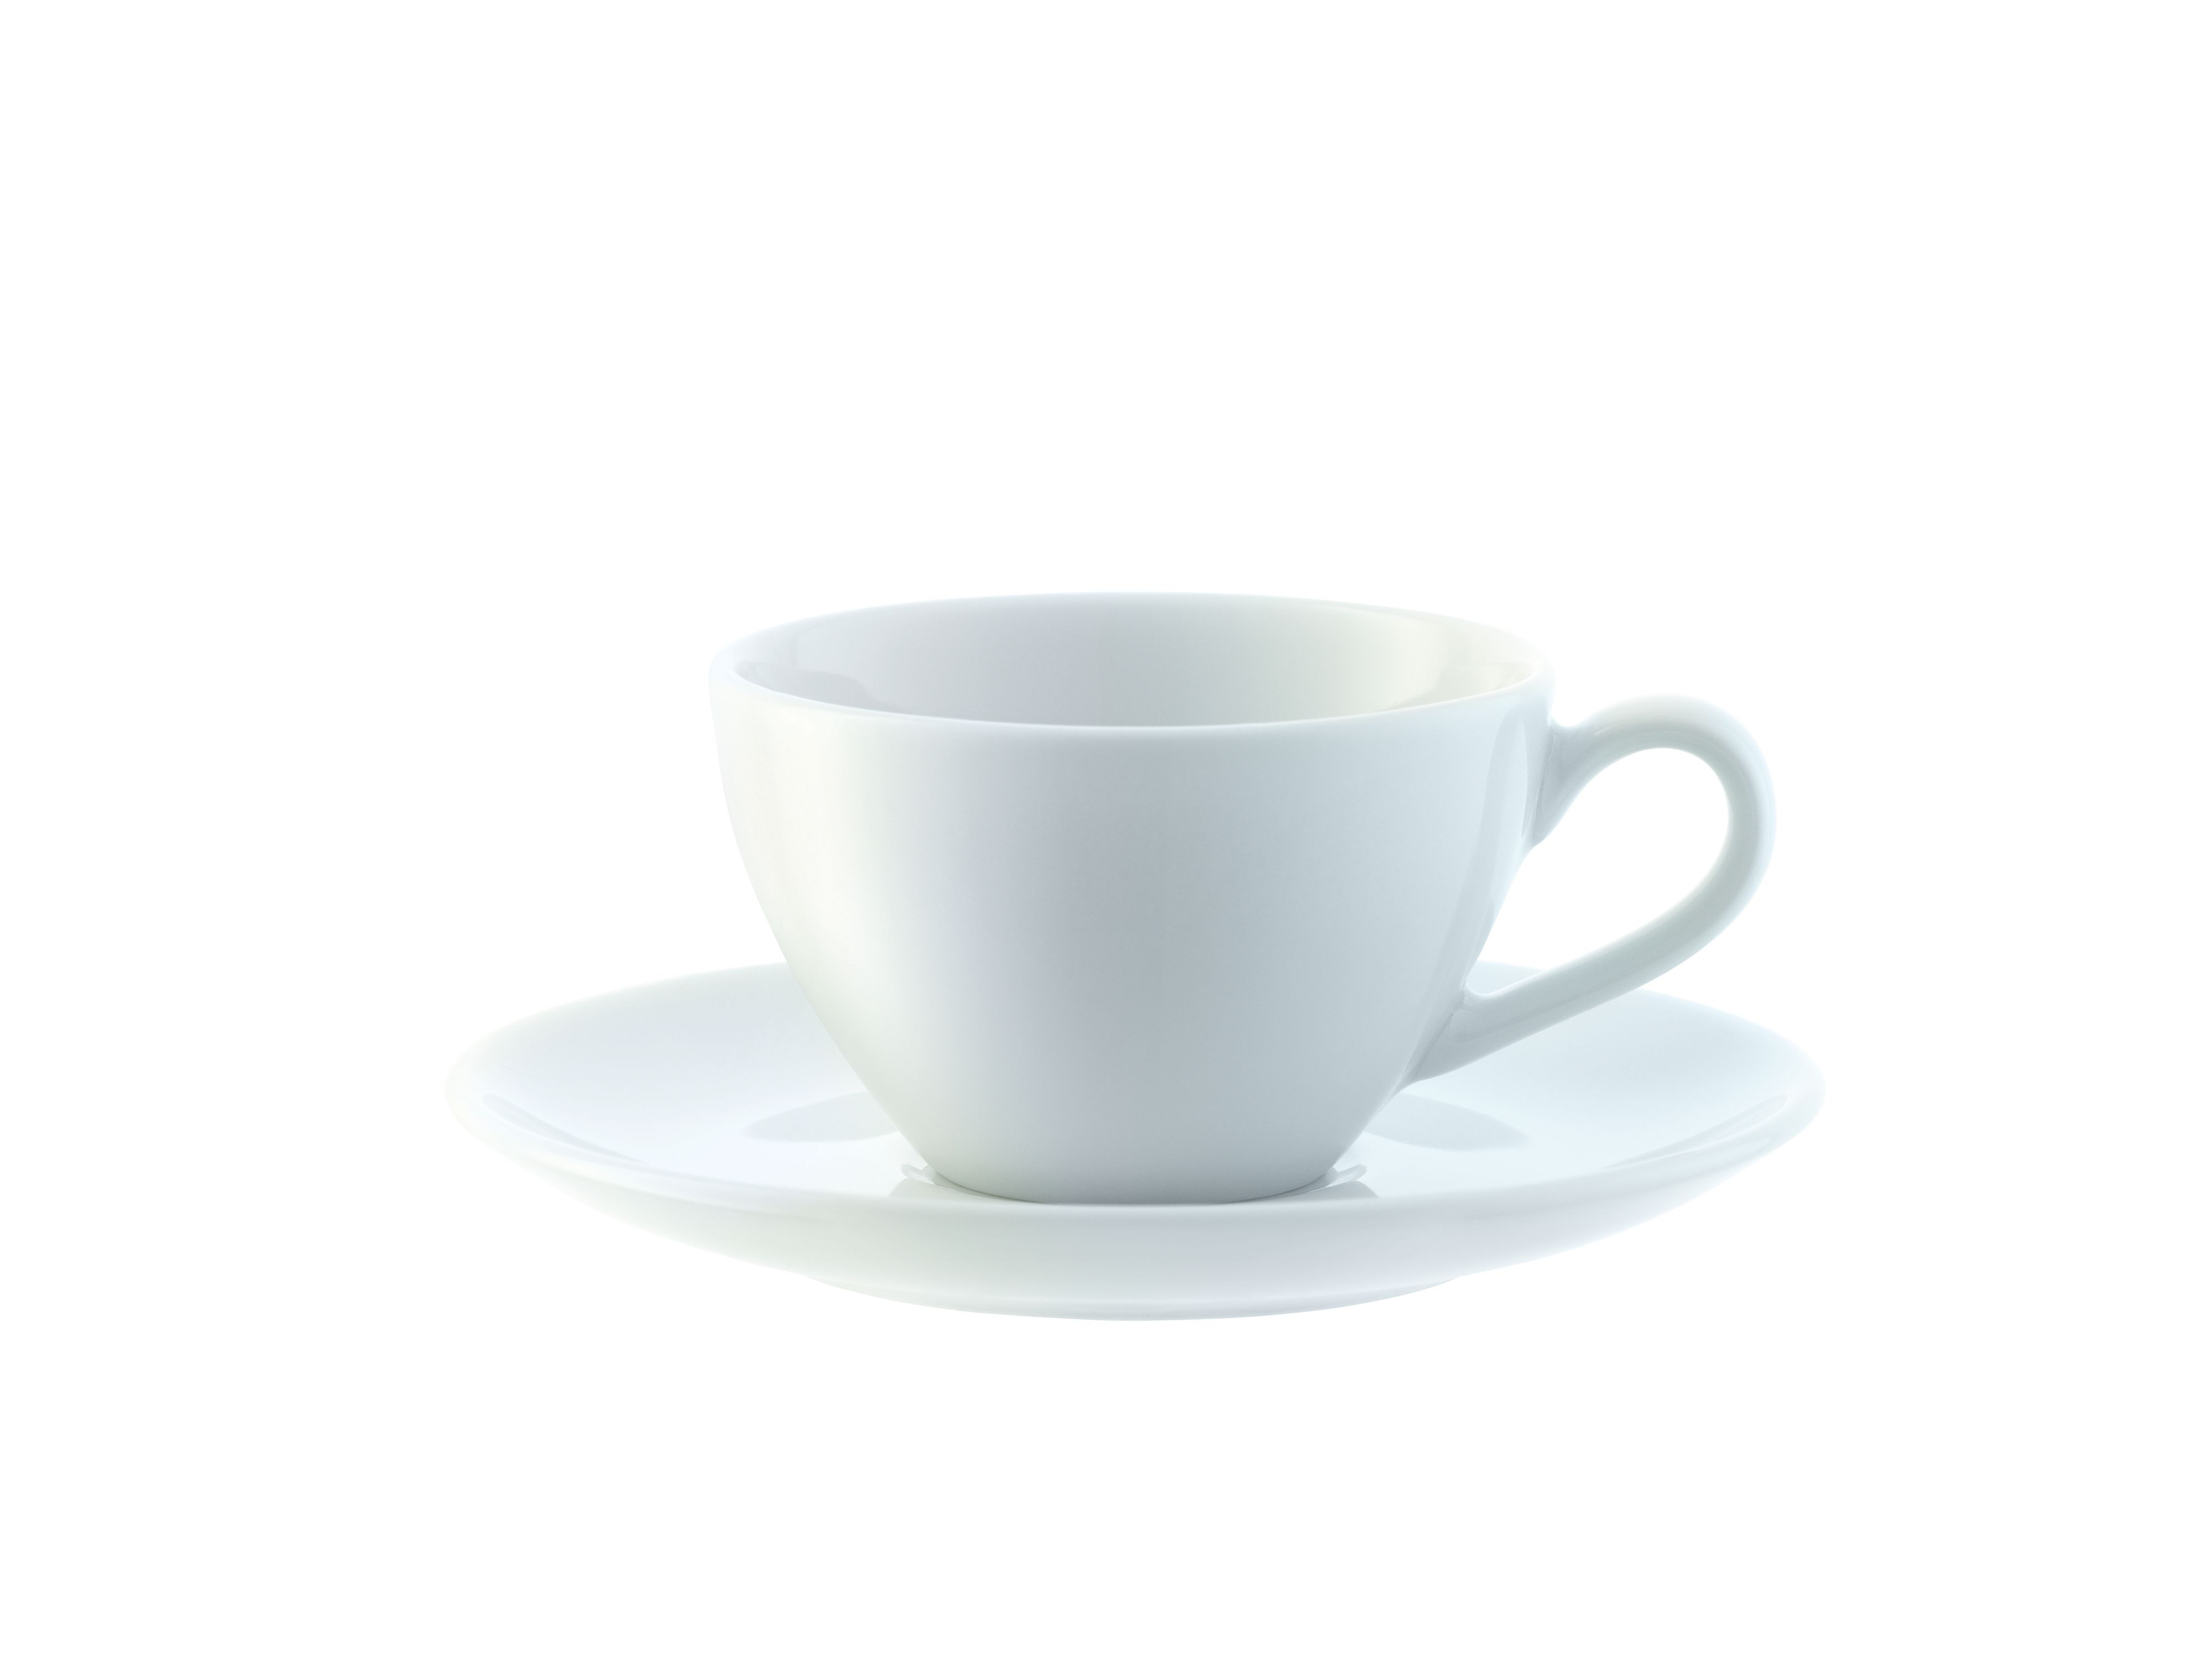 Dine Espresso Cup & Saucer Curved, set of four